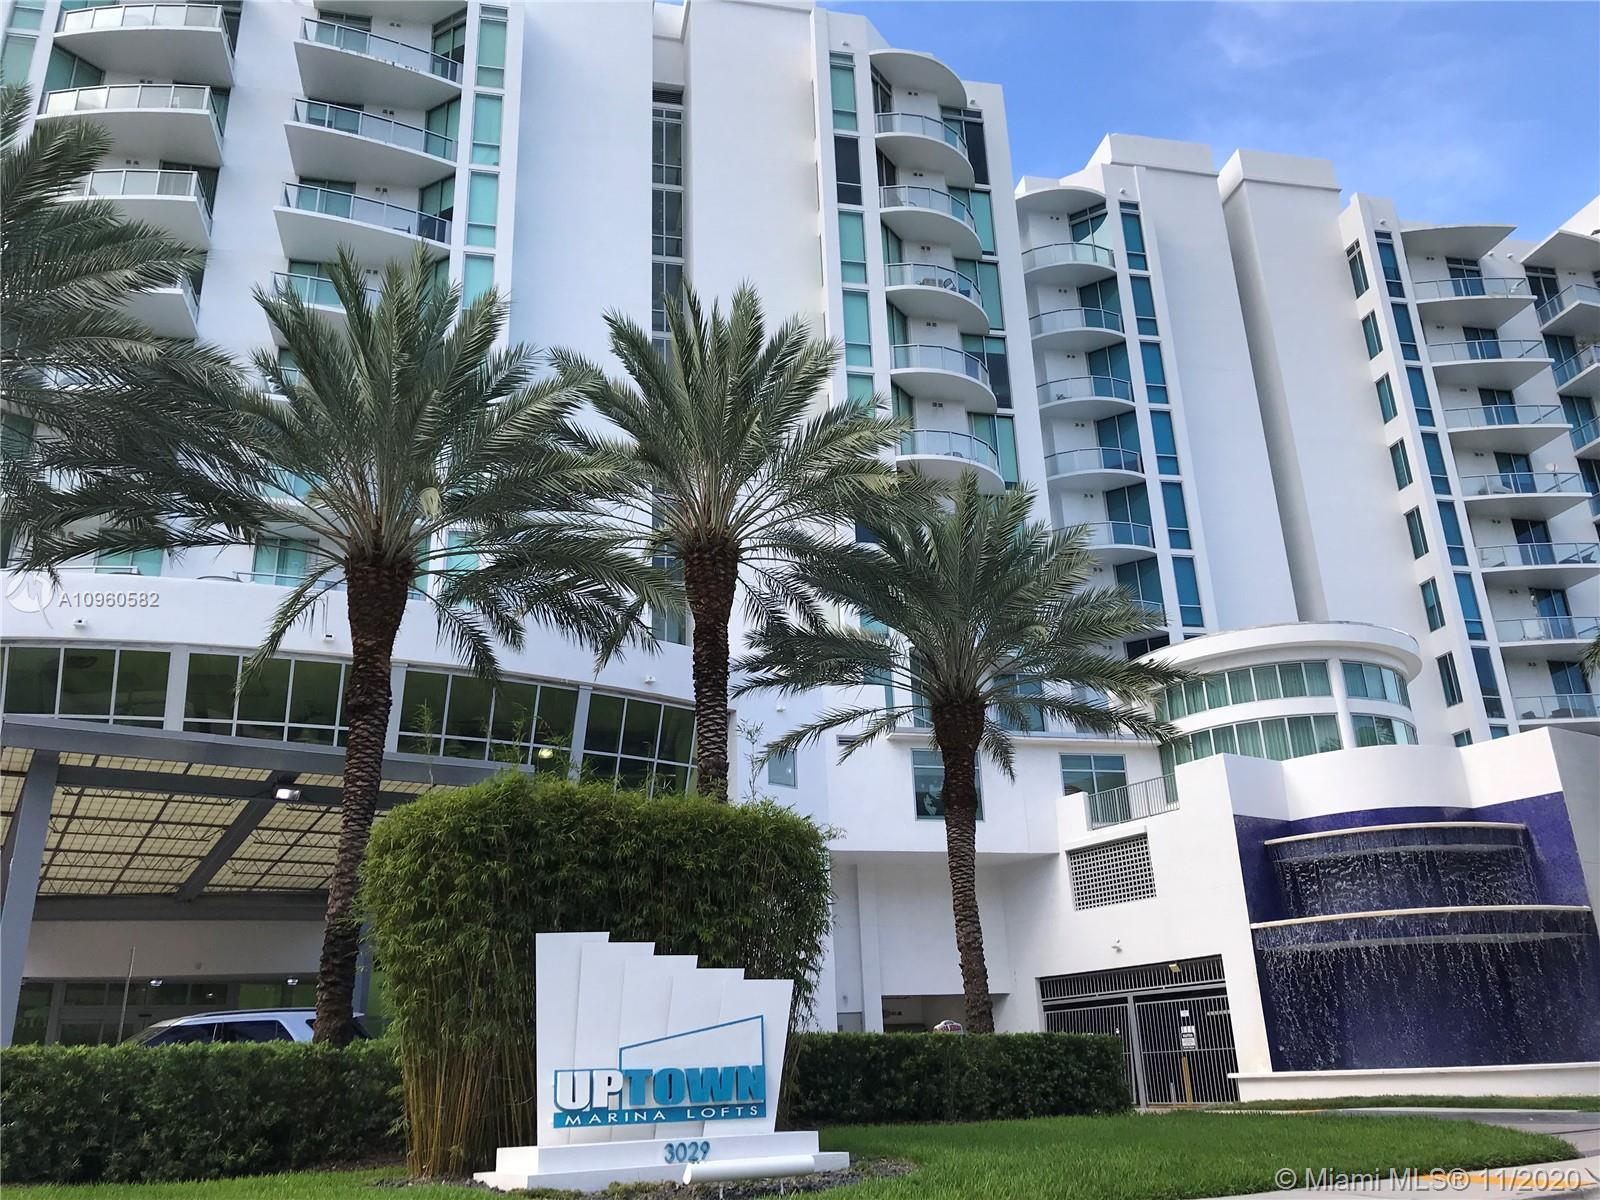 Luxury waterfront condo in the heart of Aventura. 2 spacious bedrooms, 2 bathrooms, 2 balconies with